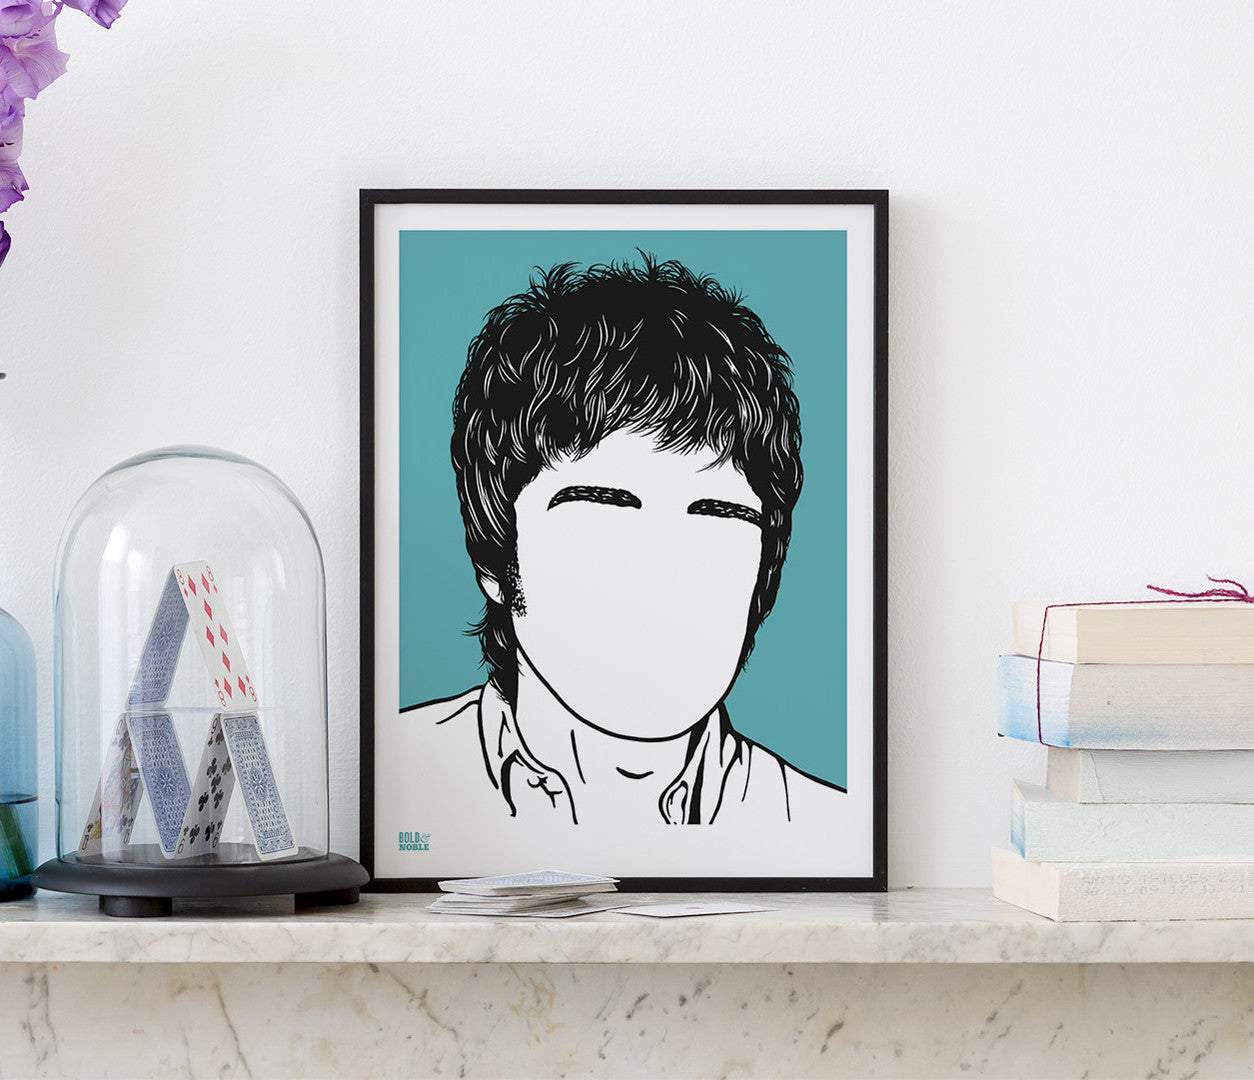 Wall Art ideas: Economical Screen Prints, Noel Gallagher Screen Print in blue